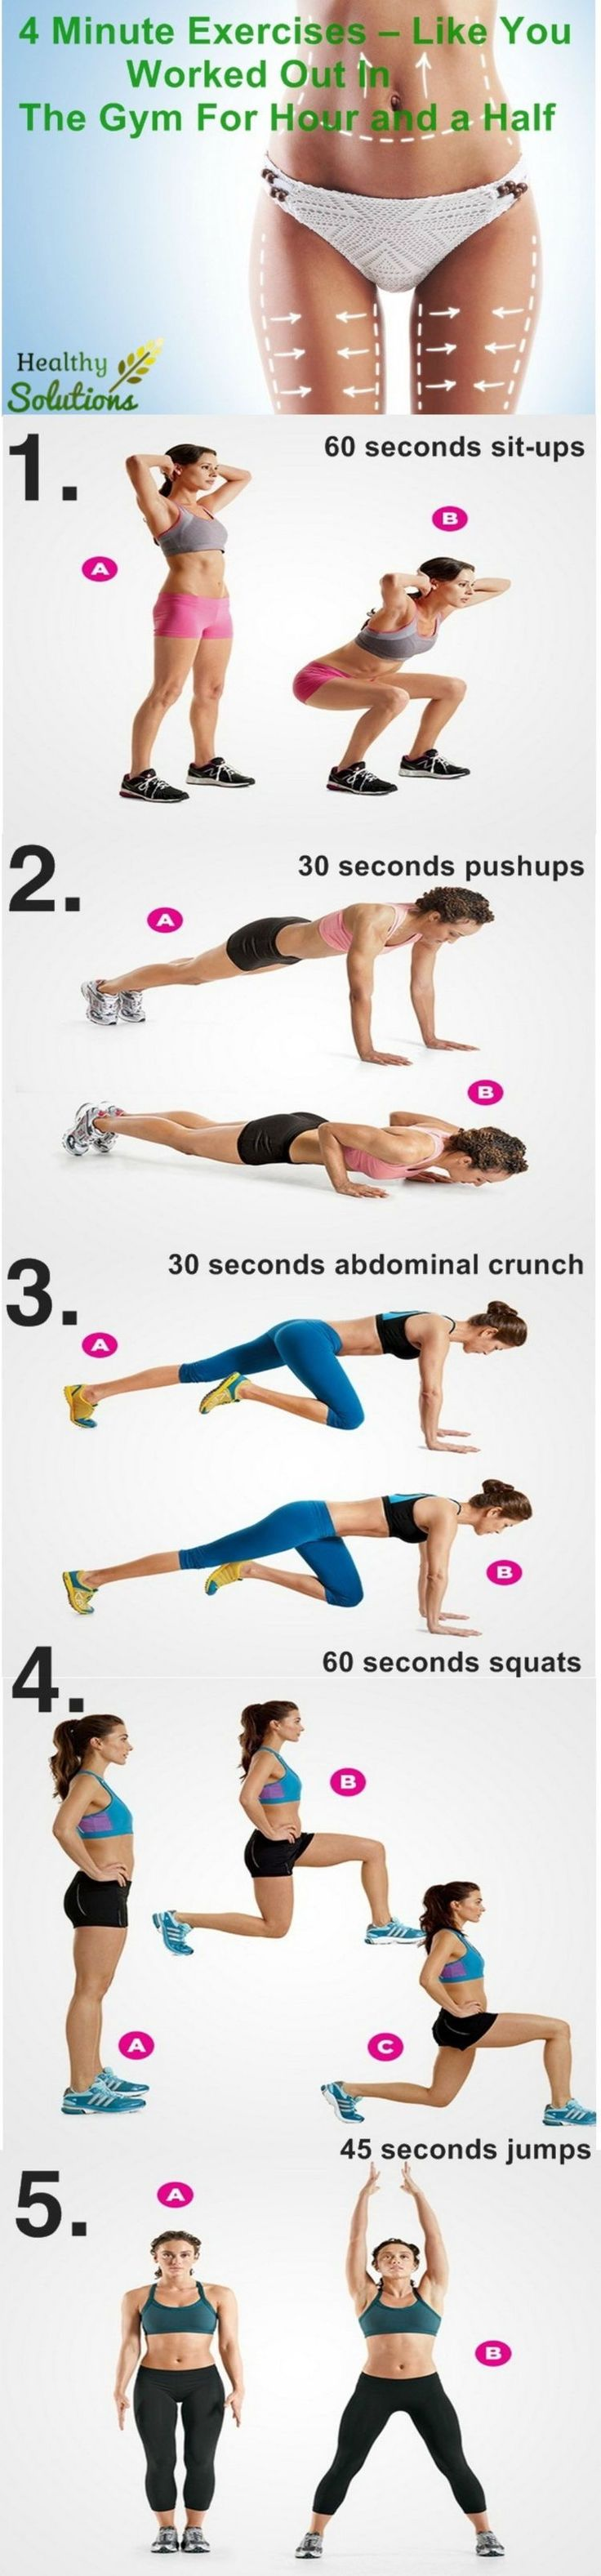 4 Min Workouts | Posted by: NewHowtoLoseBellyFat.com